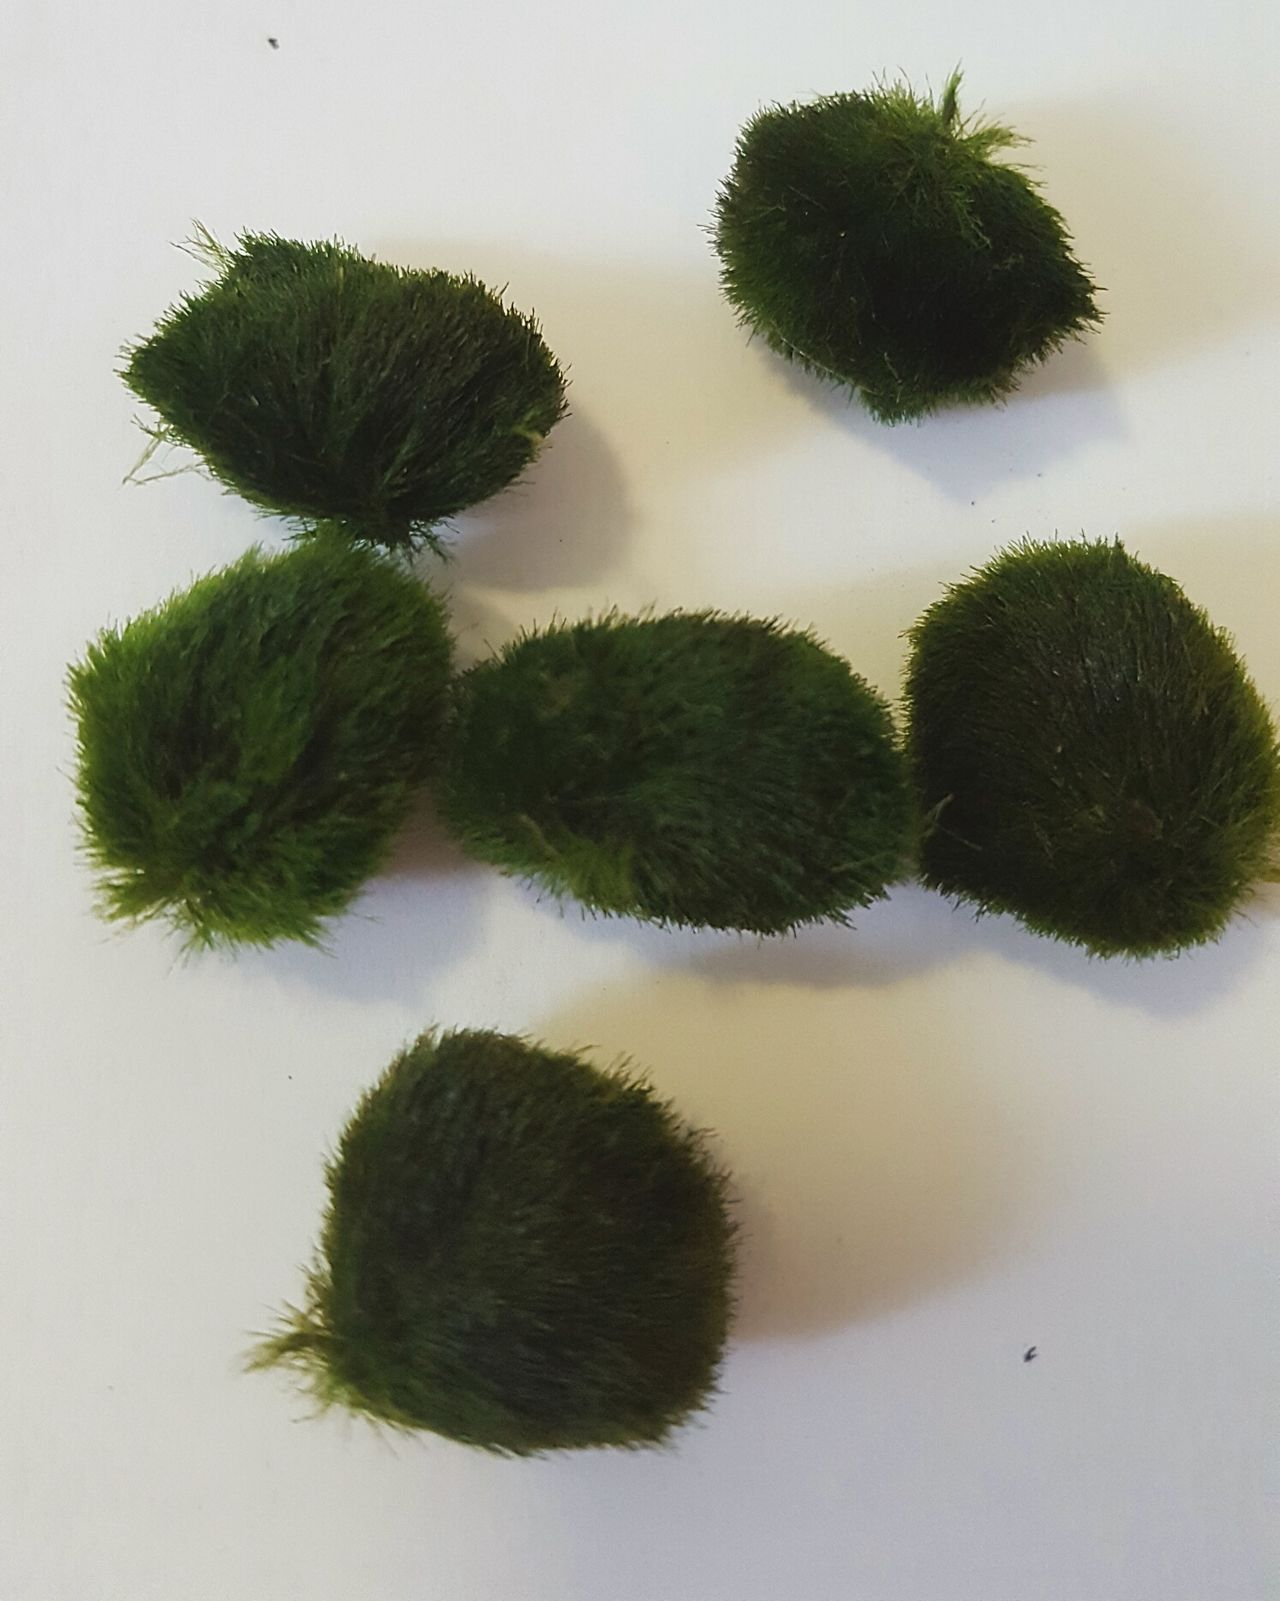 White Background Close-up Moss Mossball Moss Balls Moss Ball Moss Close Up Moss Art